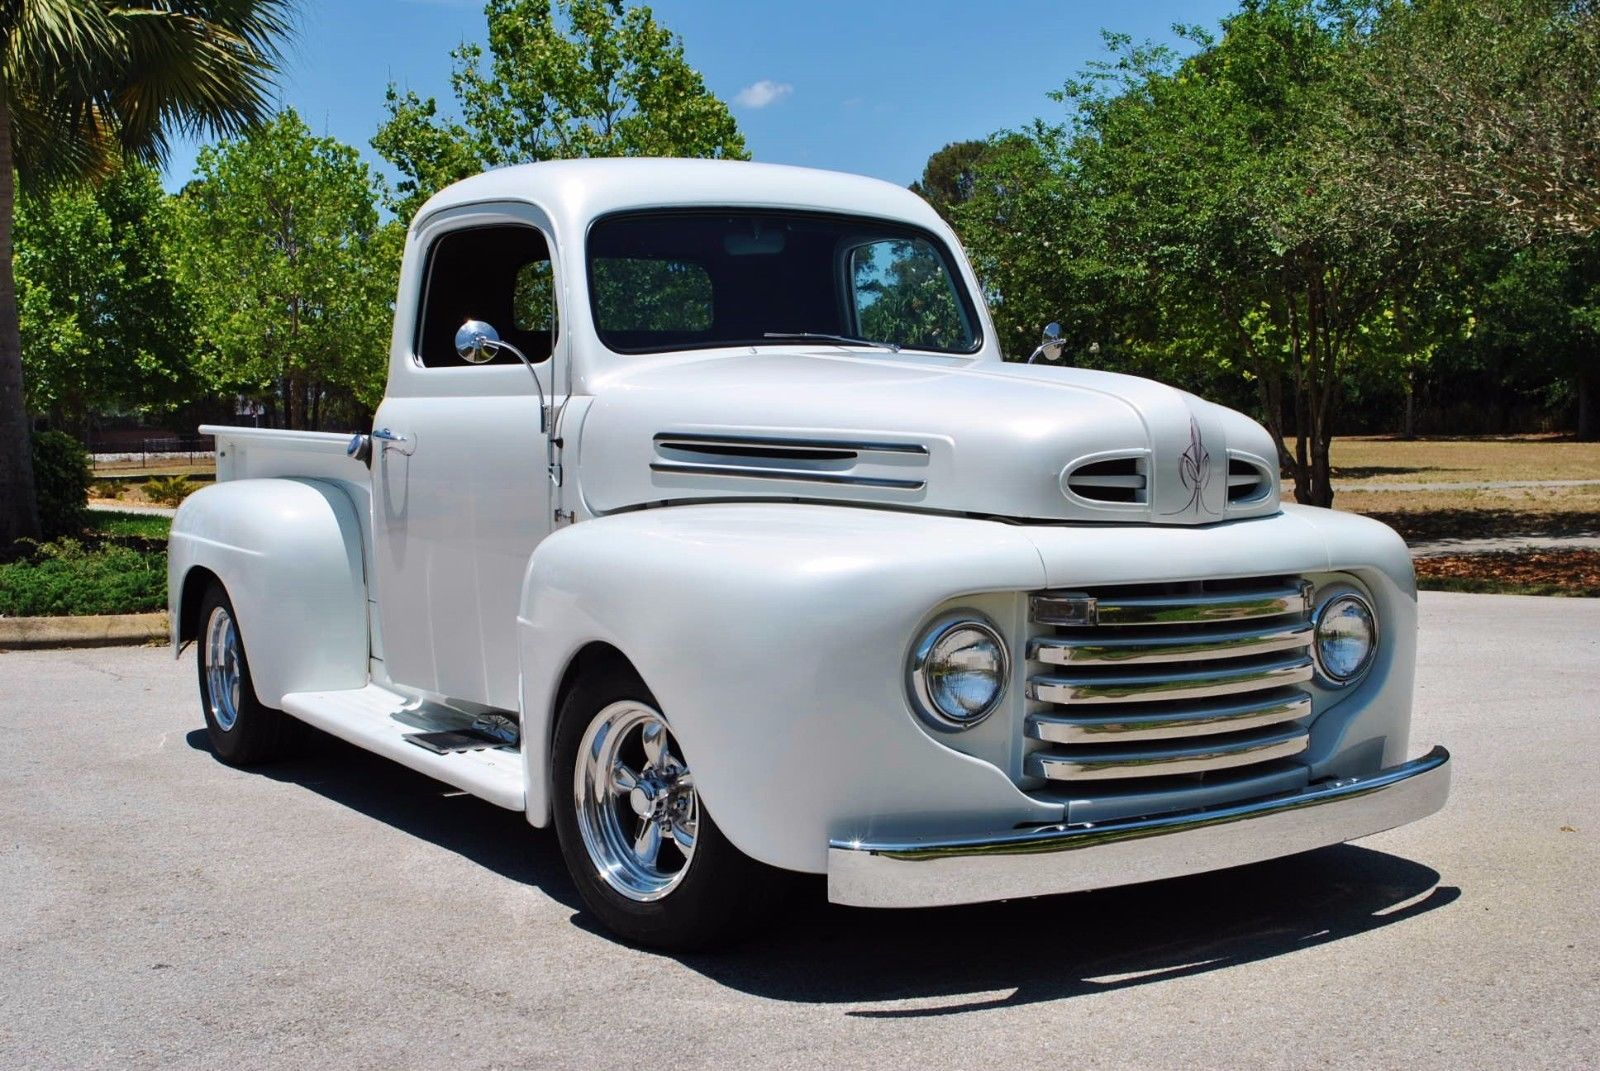 2017 Street Rod For Sale >> Mustang engine 1948 Ford Pickups F 1 Pickup Custom for sale